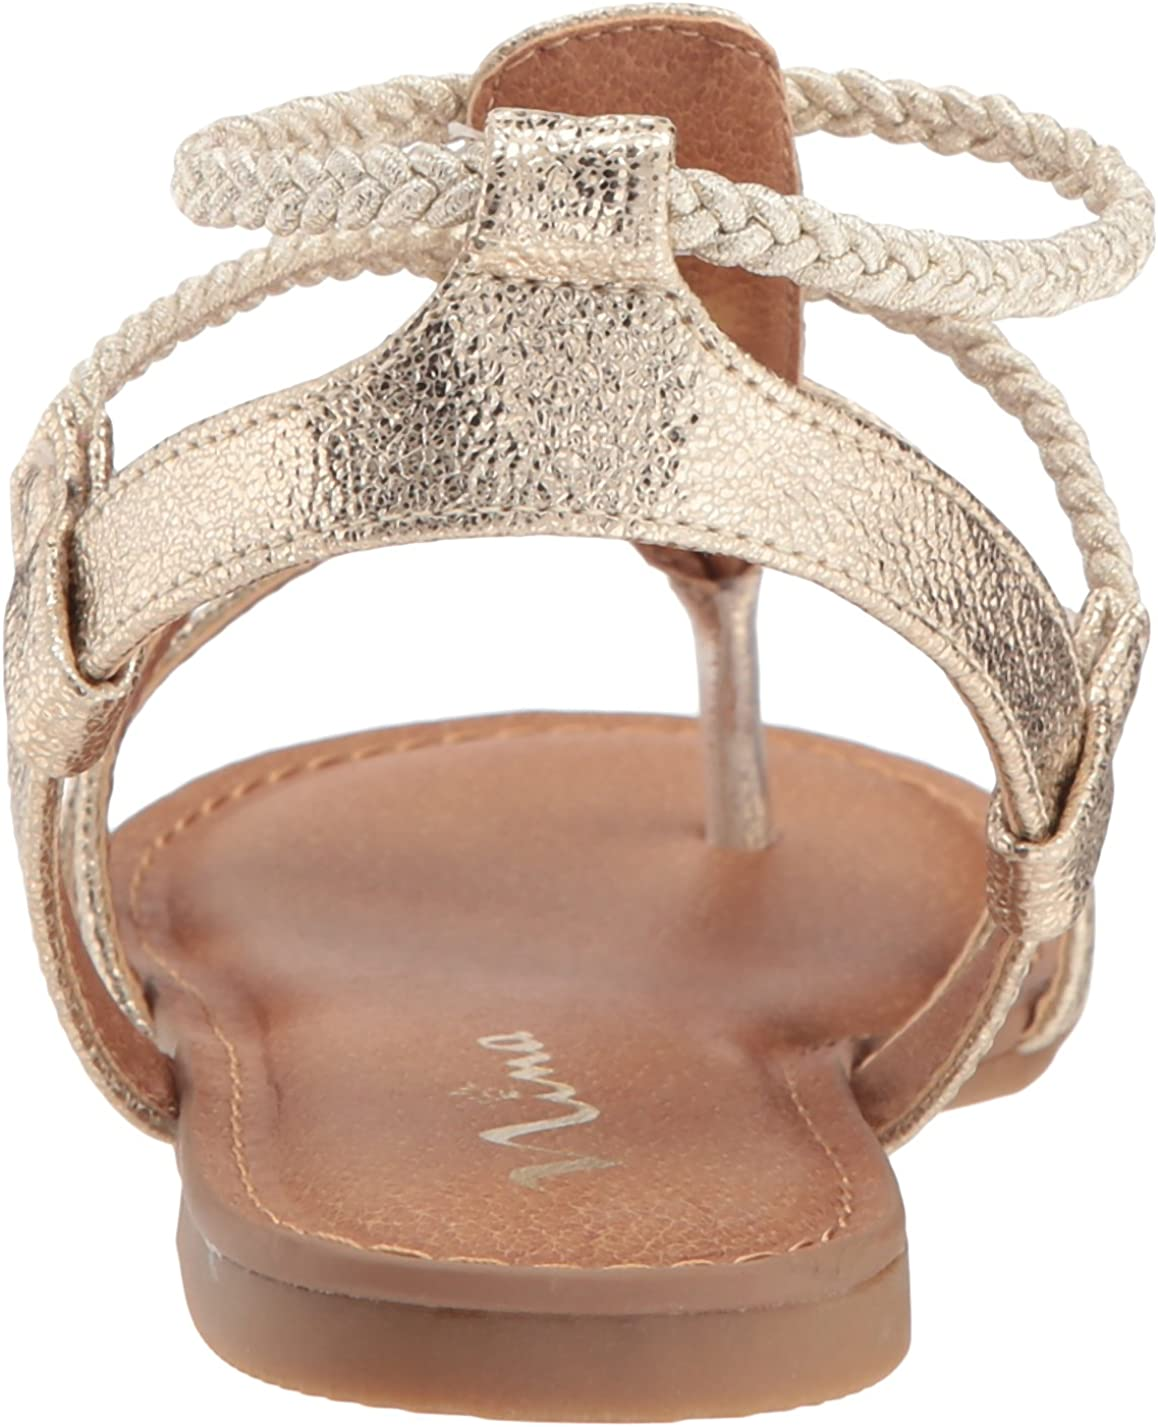 NINA Kids margaree Sandal